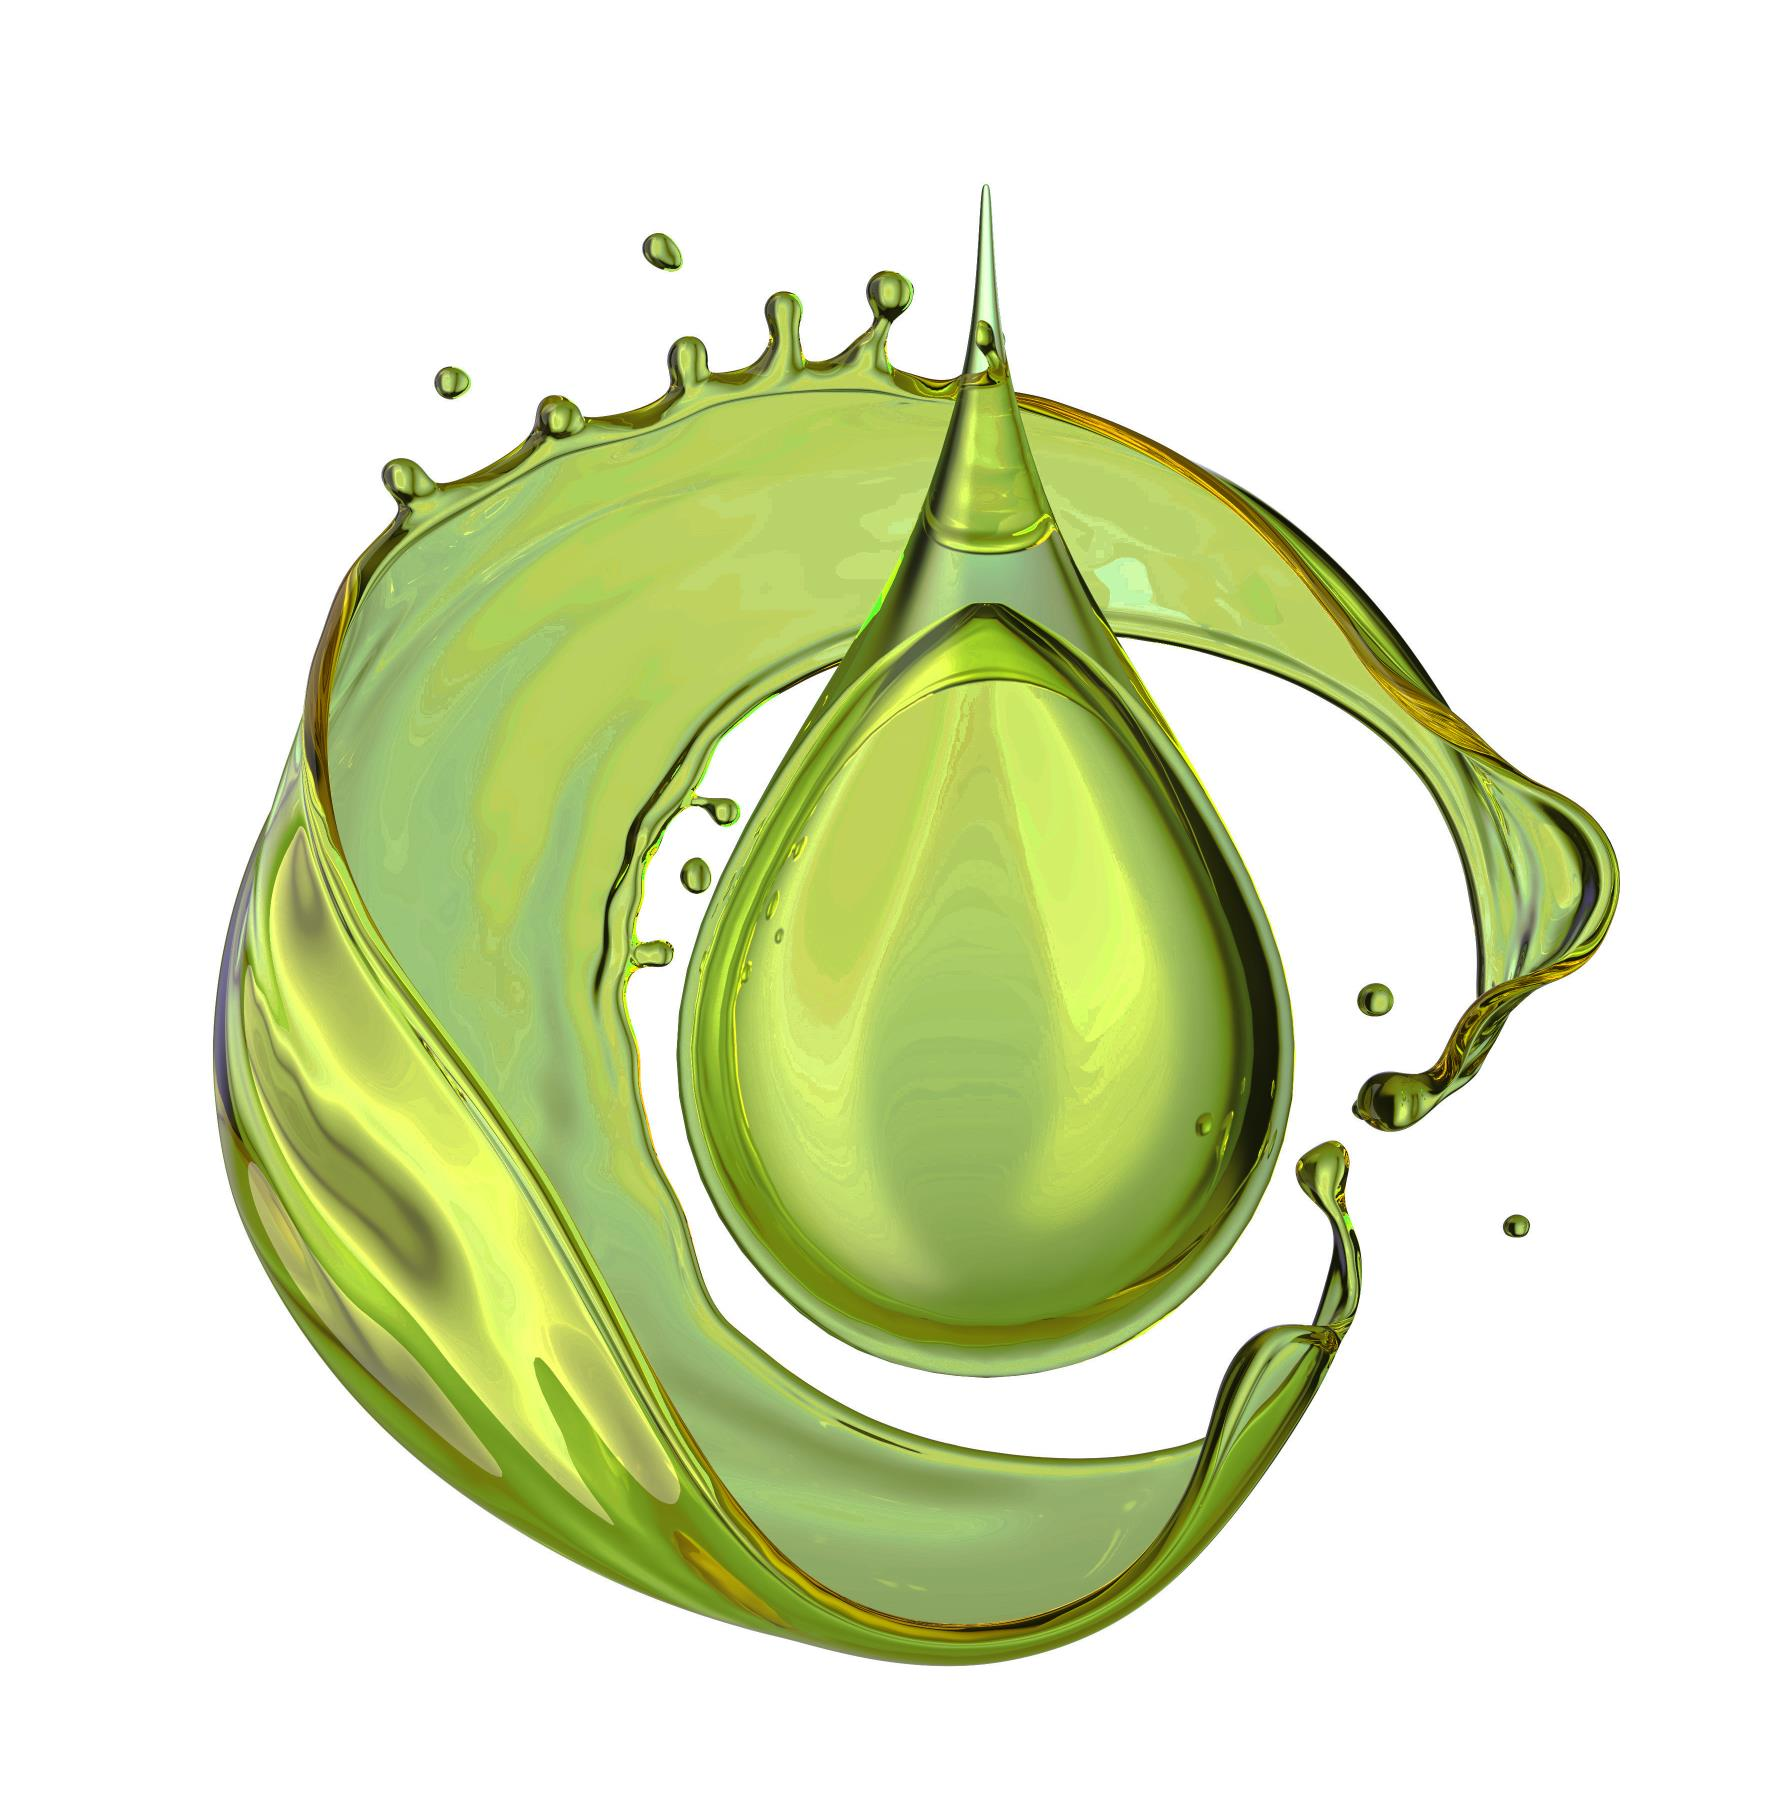 olive-oil-drop-white-background_2_renamed